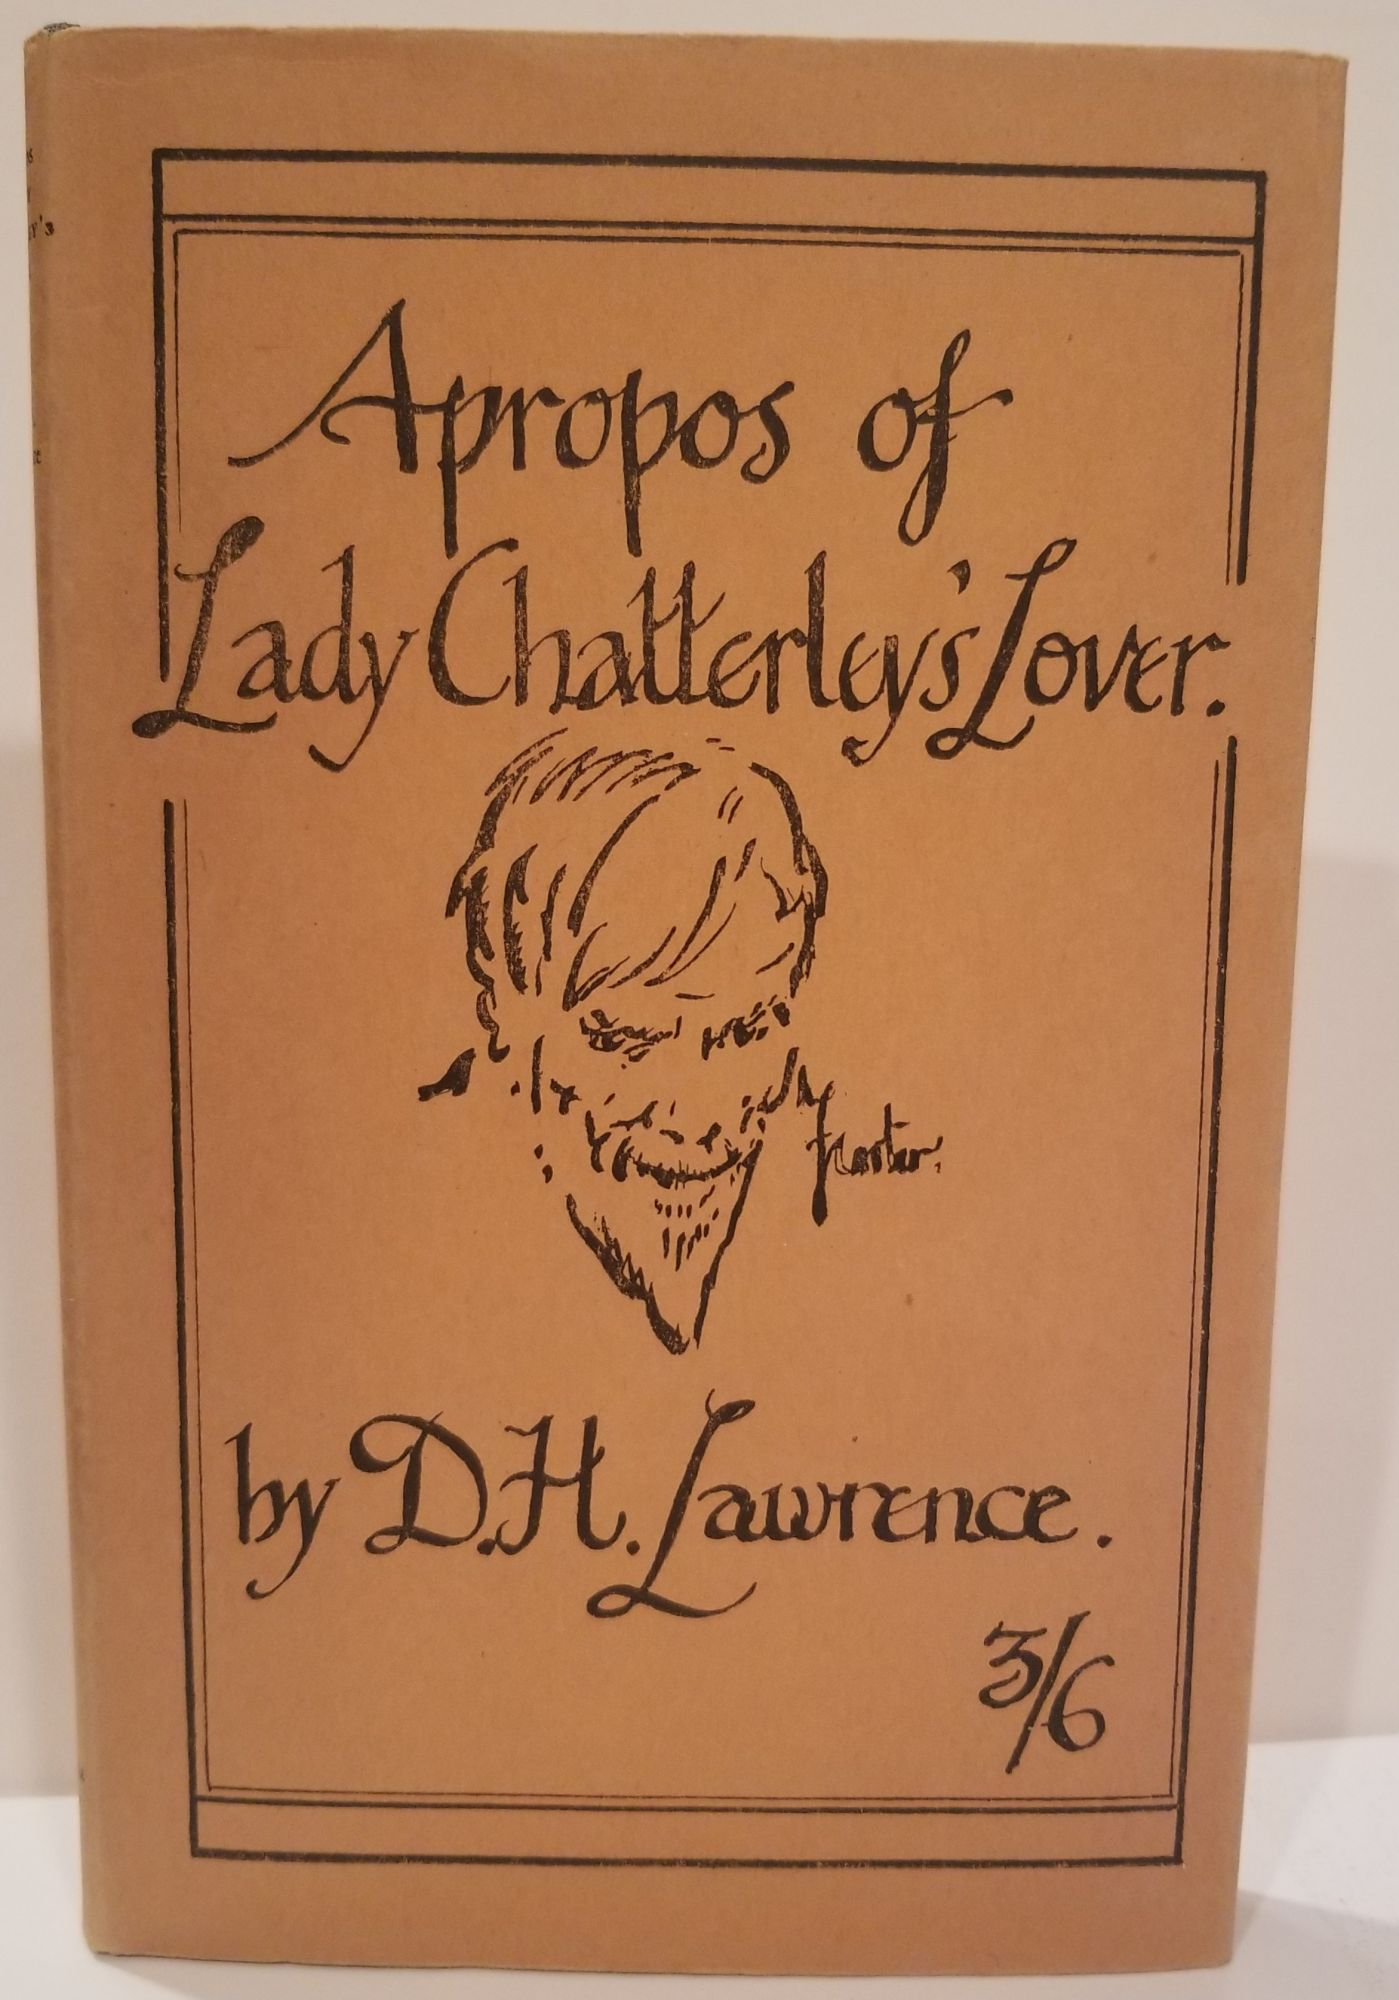 APROPOS OF LADY CHATTERLY'S LOVER. D. H. Lawrence.